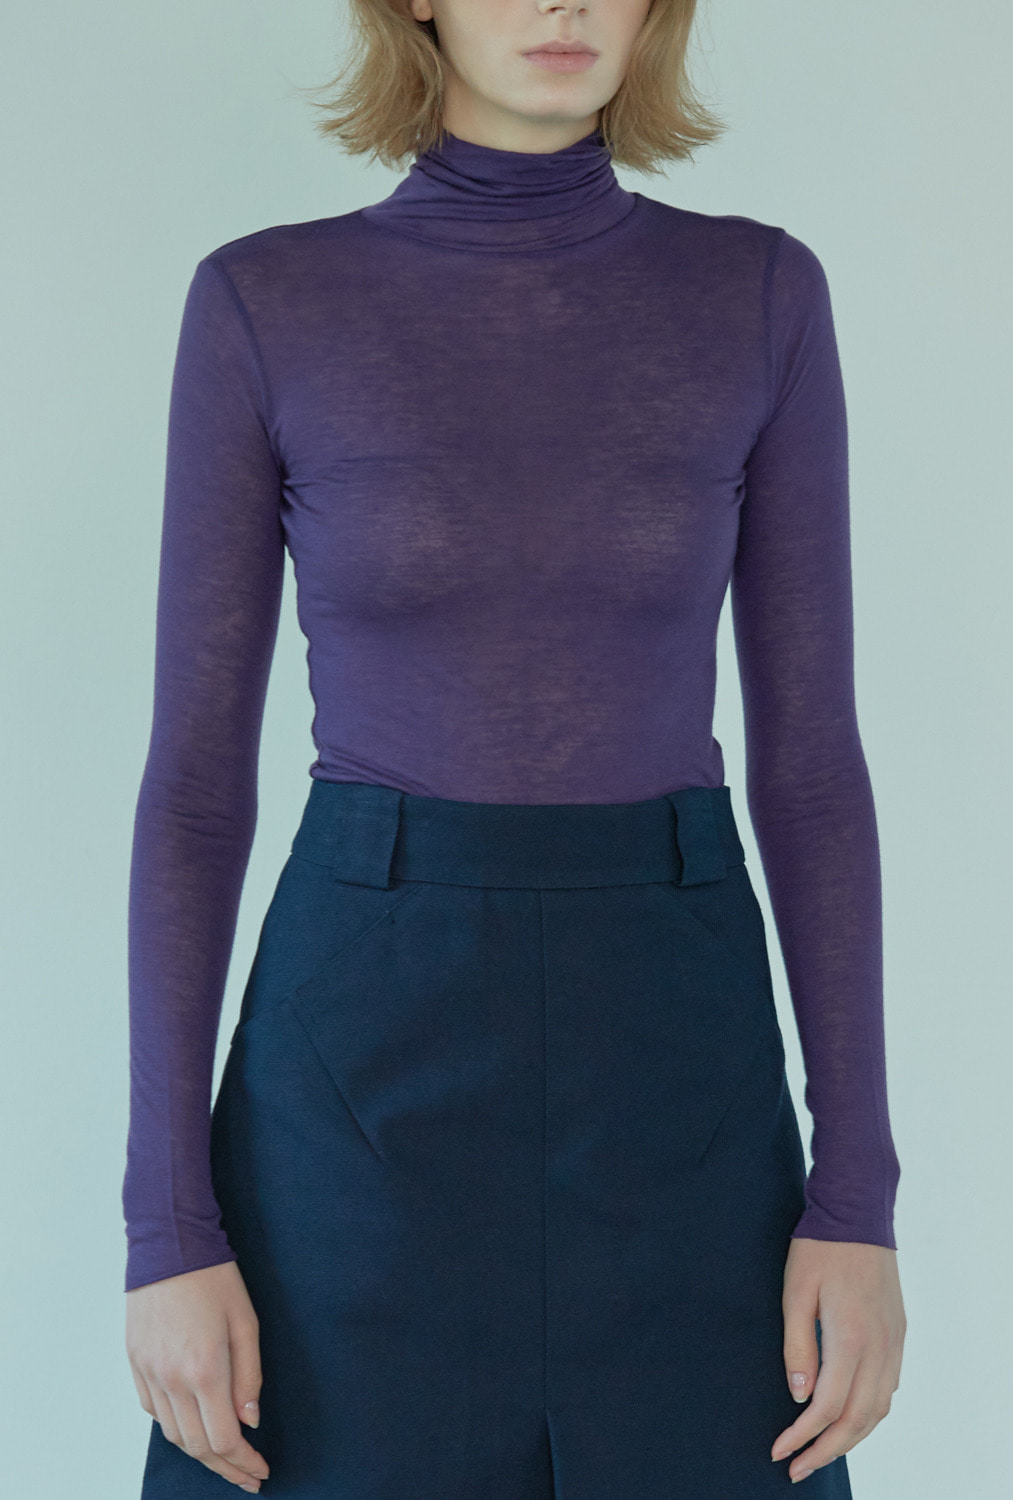 SLIMFIT TURTLE NECK TT83001 PURPLE